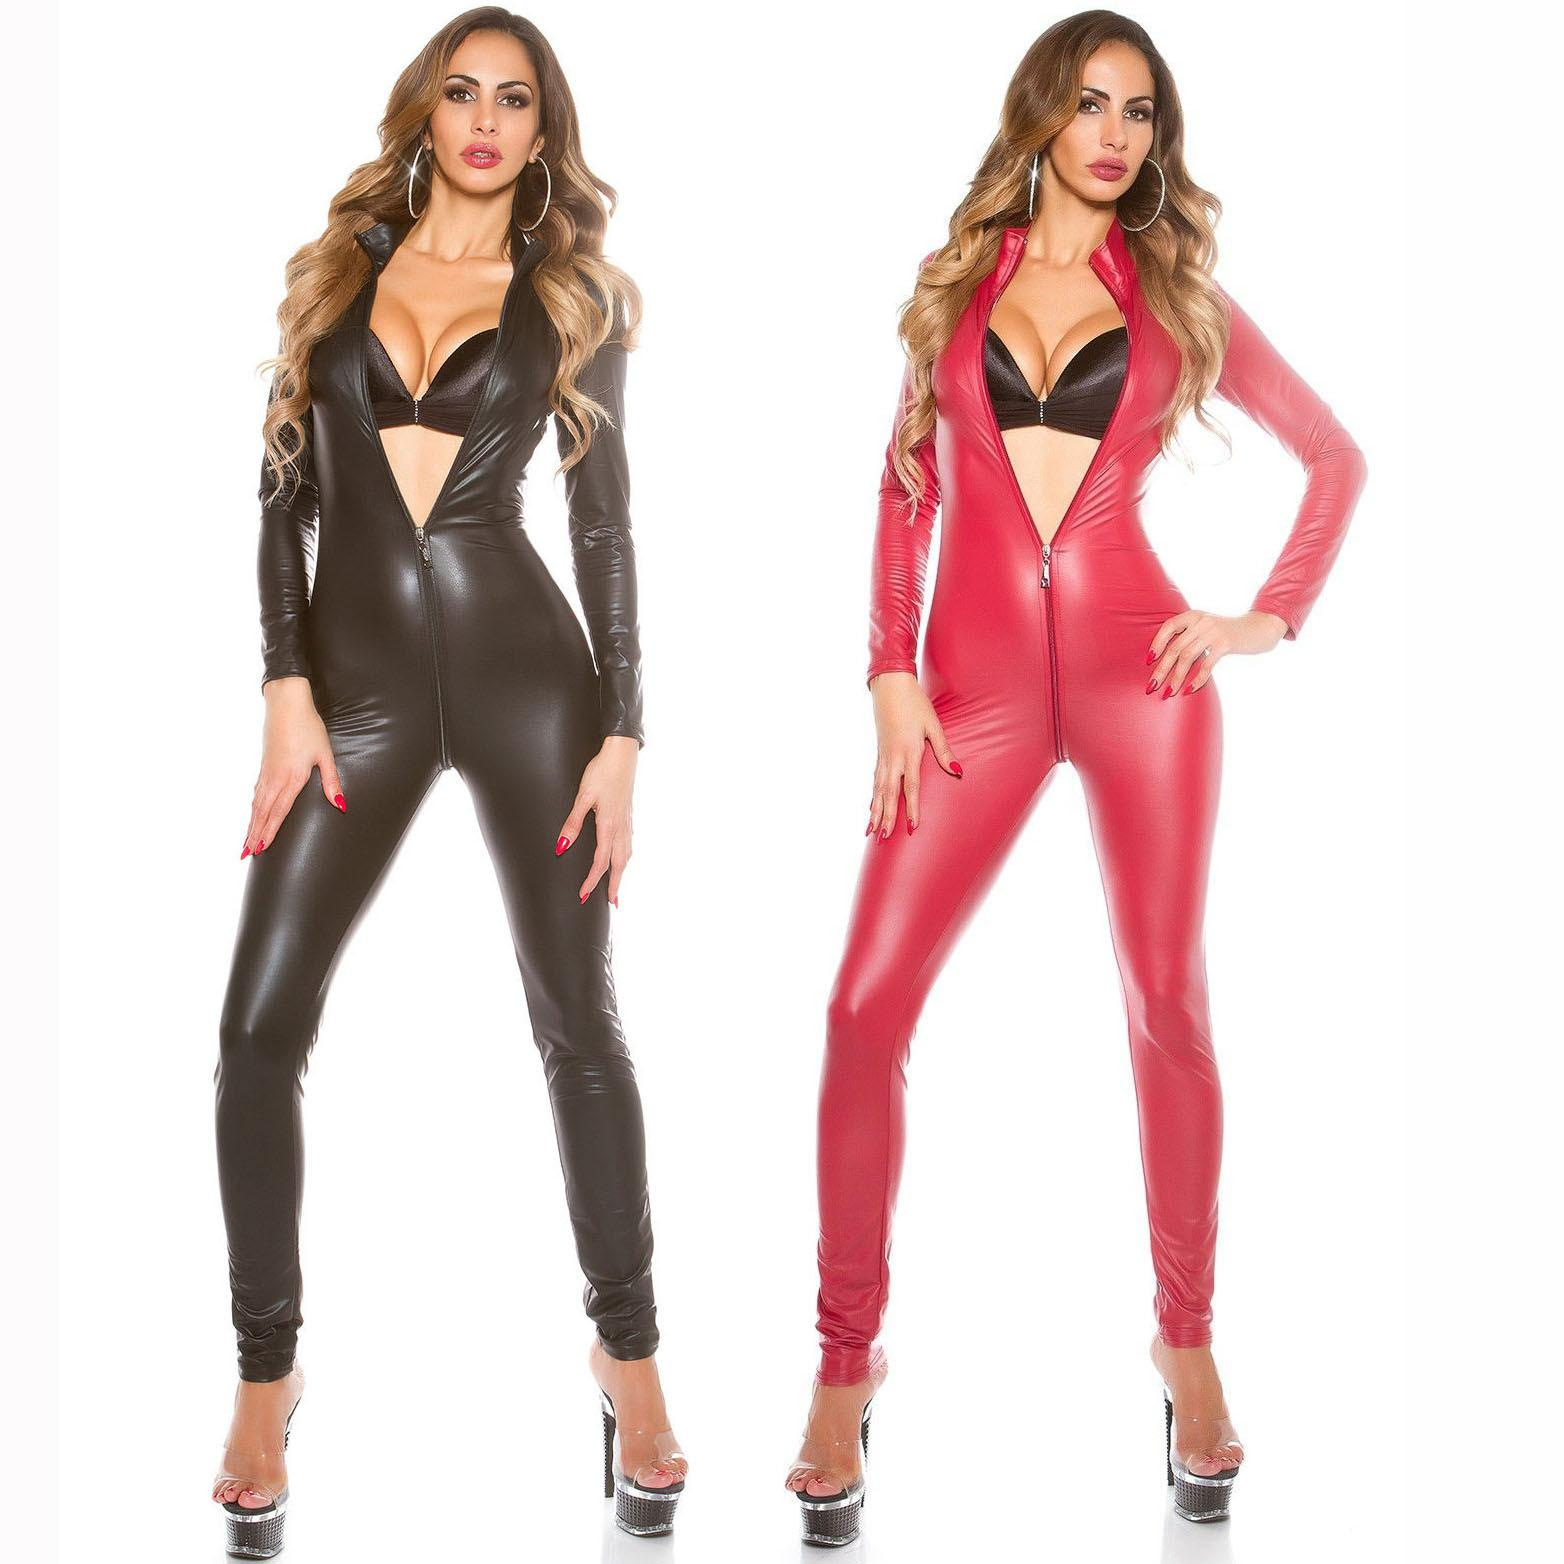 47d4957fdc3 2019 Plus Size 2XL Faux Leather Wetlook Sexy Lingerie Hot Catsuit Women  Full Body Pantyhose Long Jumpsuits Latex Vinyl Clubwear From Jessicazeng